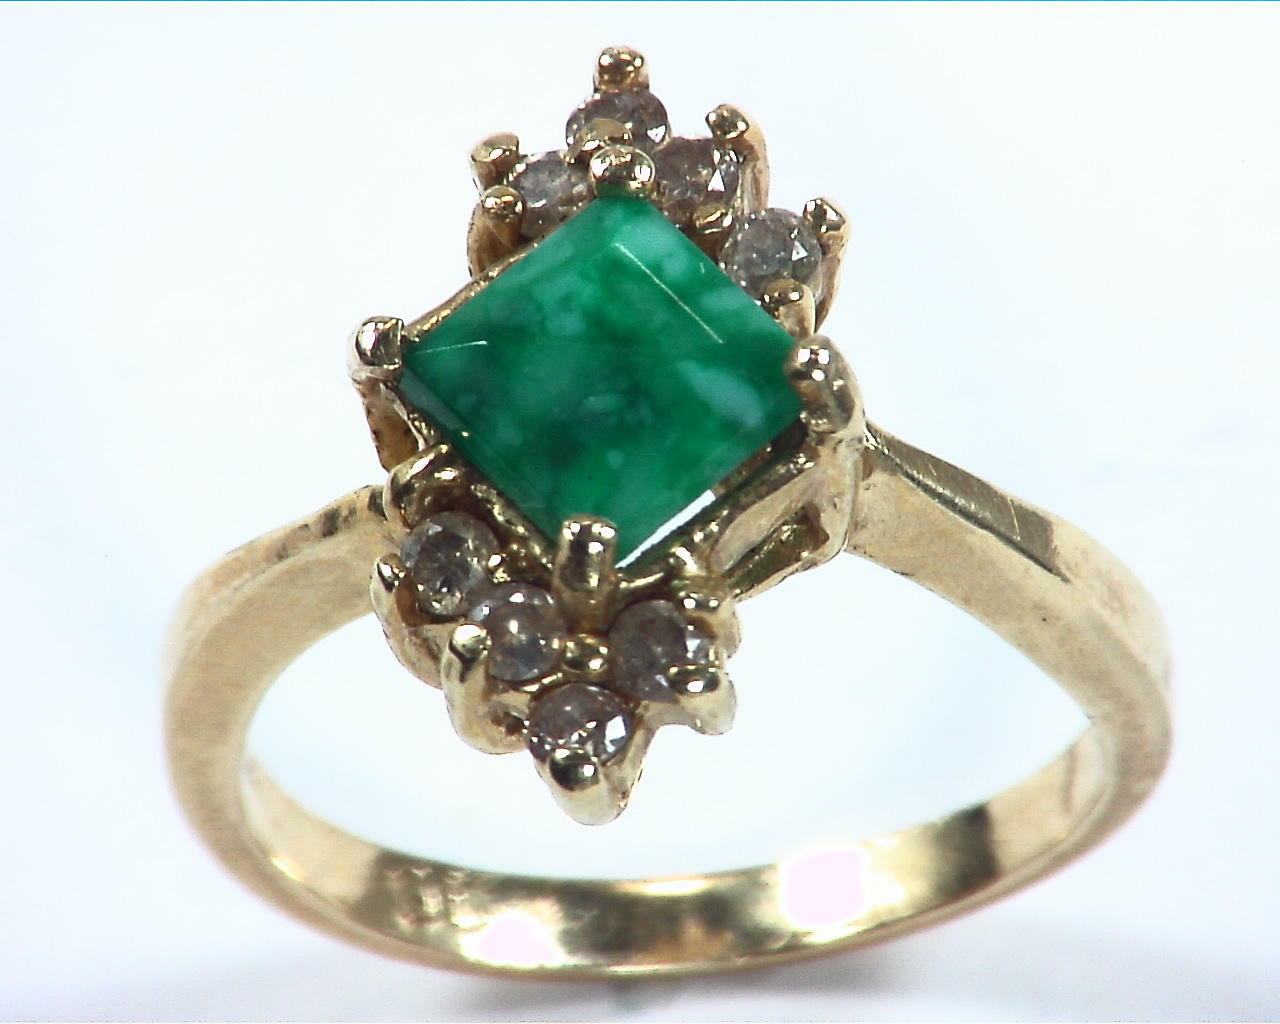 Emerald Natural Genuine Gemstone Gold And Diamond Ring RFK,158 6